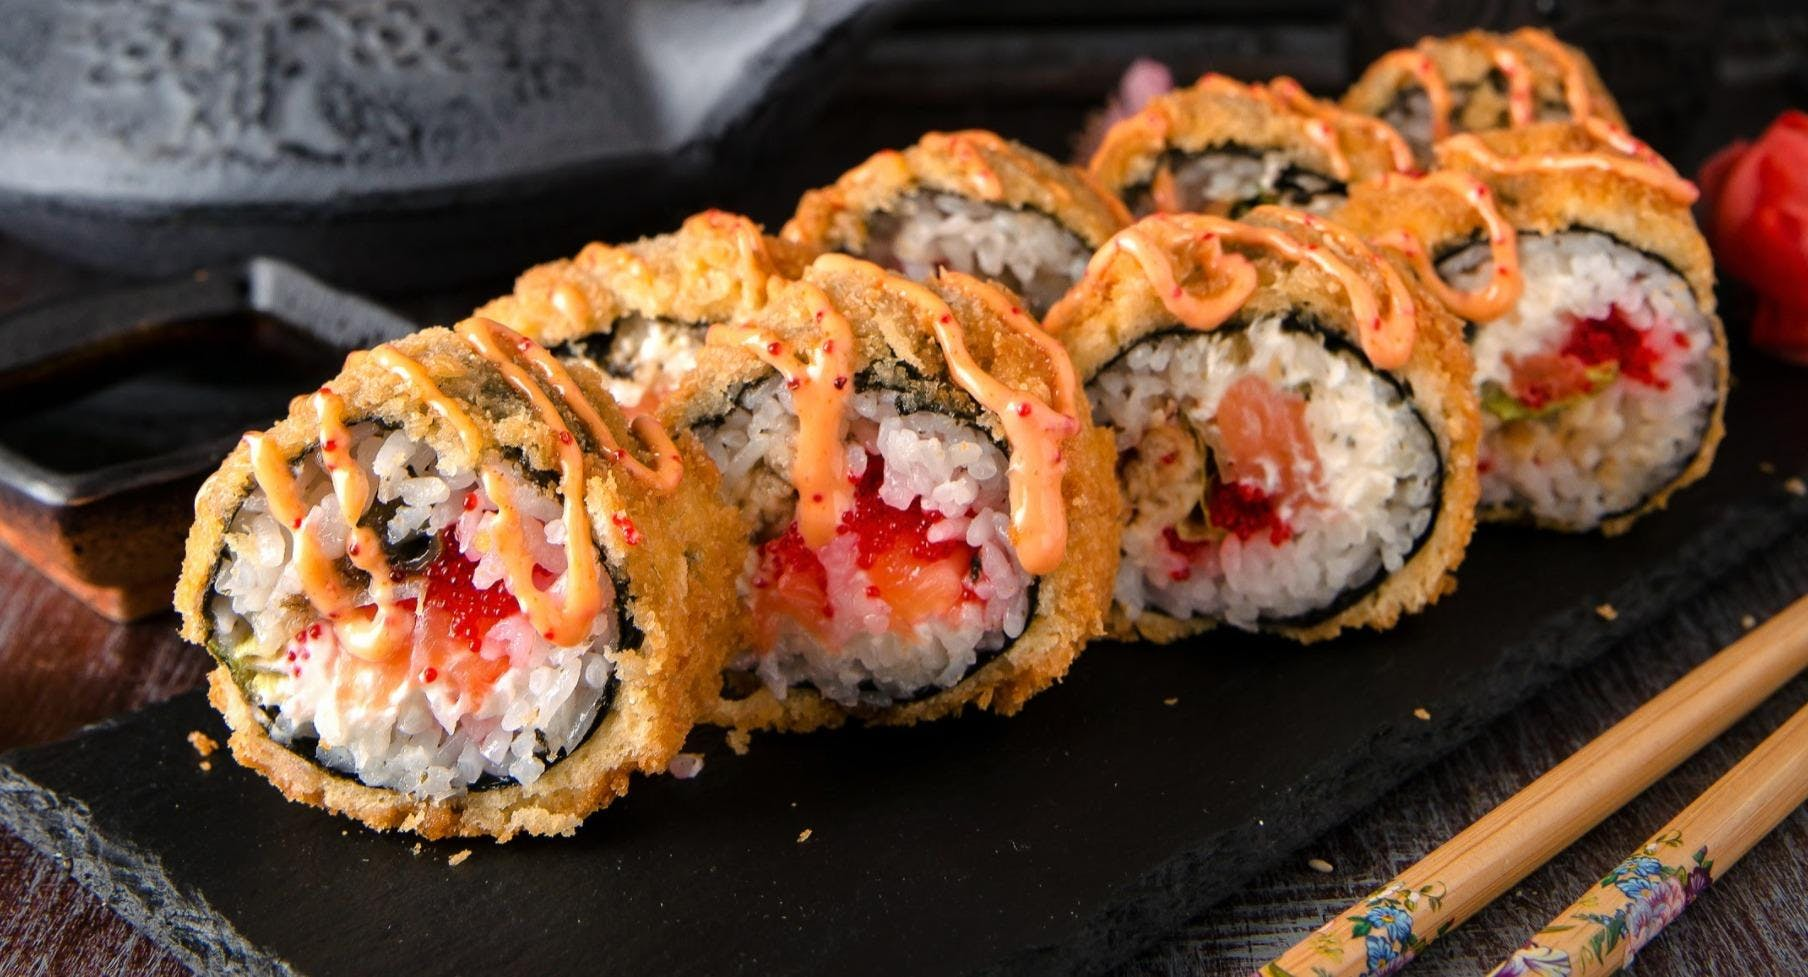 HERE - SUSHI & MORE